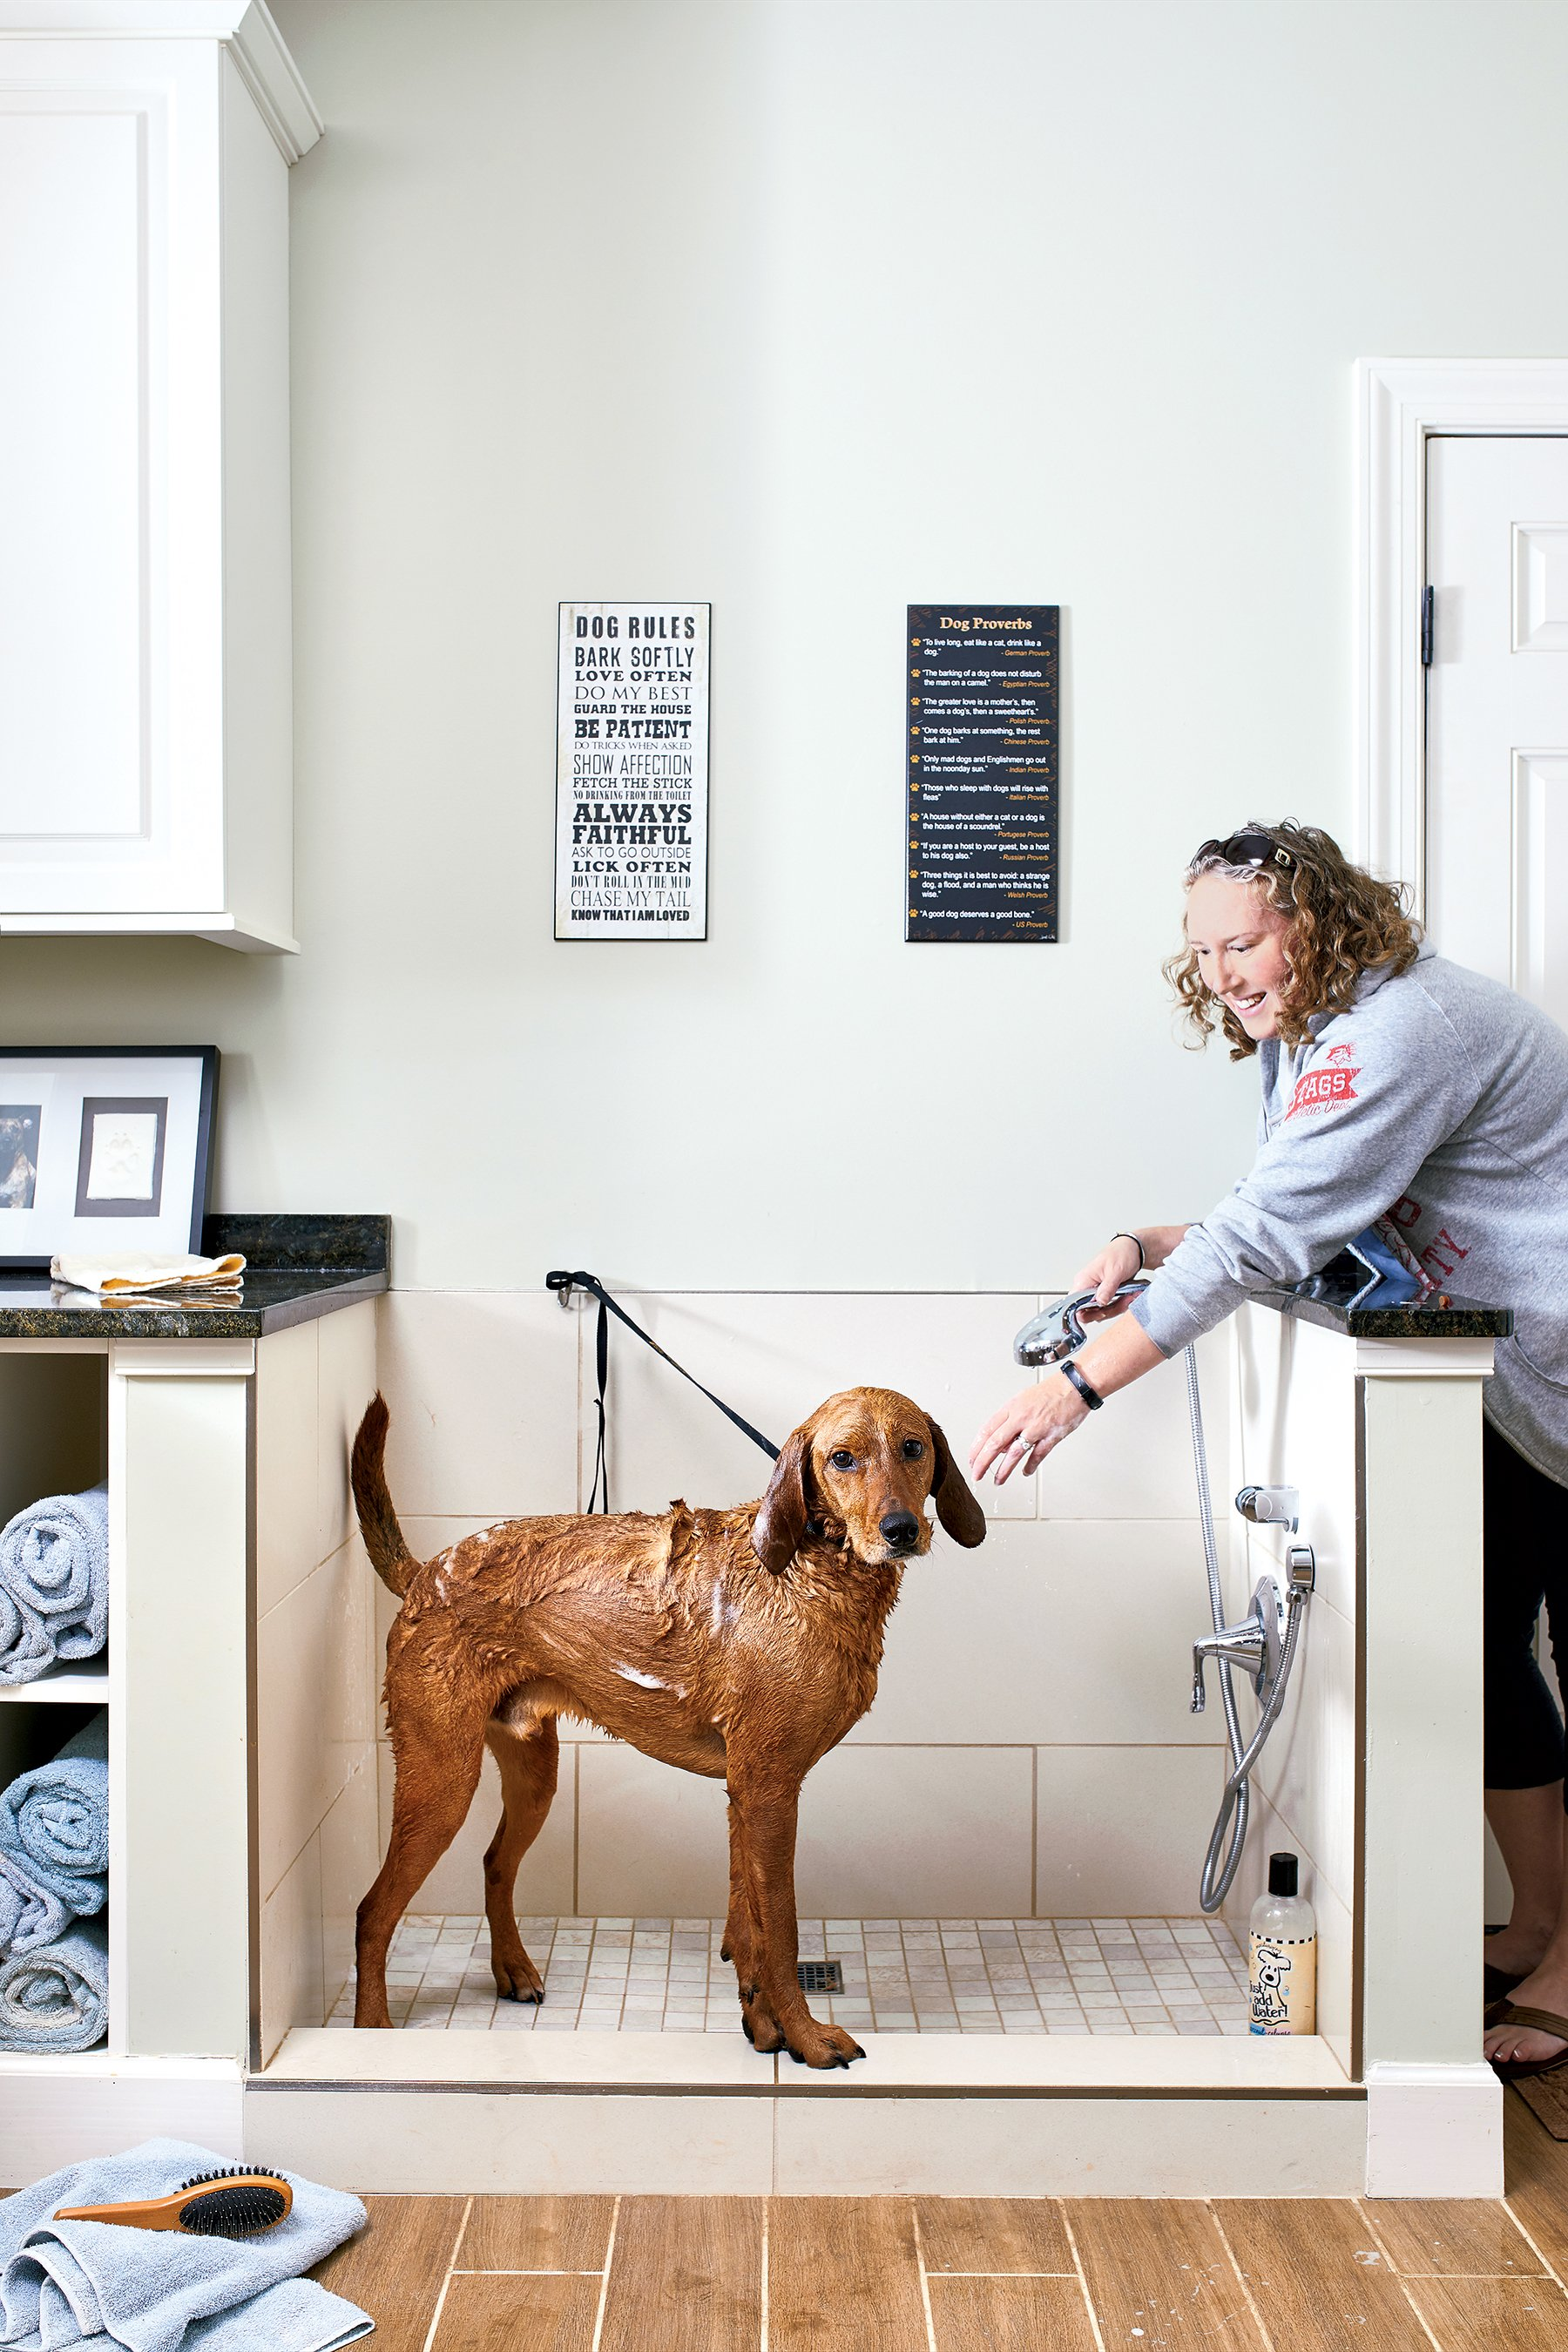 Rooms Designed For Dogs: Look Inside Two Washington Houses Designed For Dogs